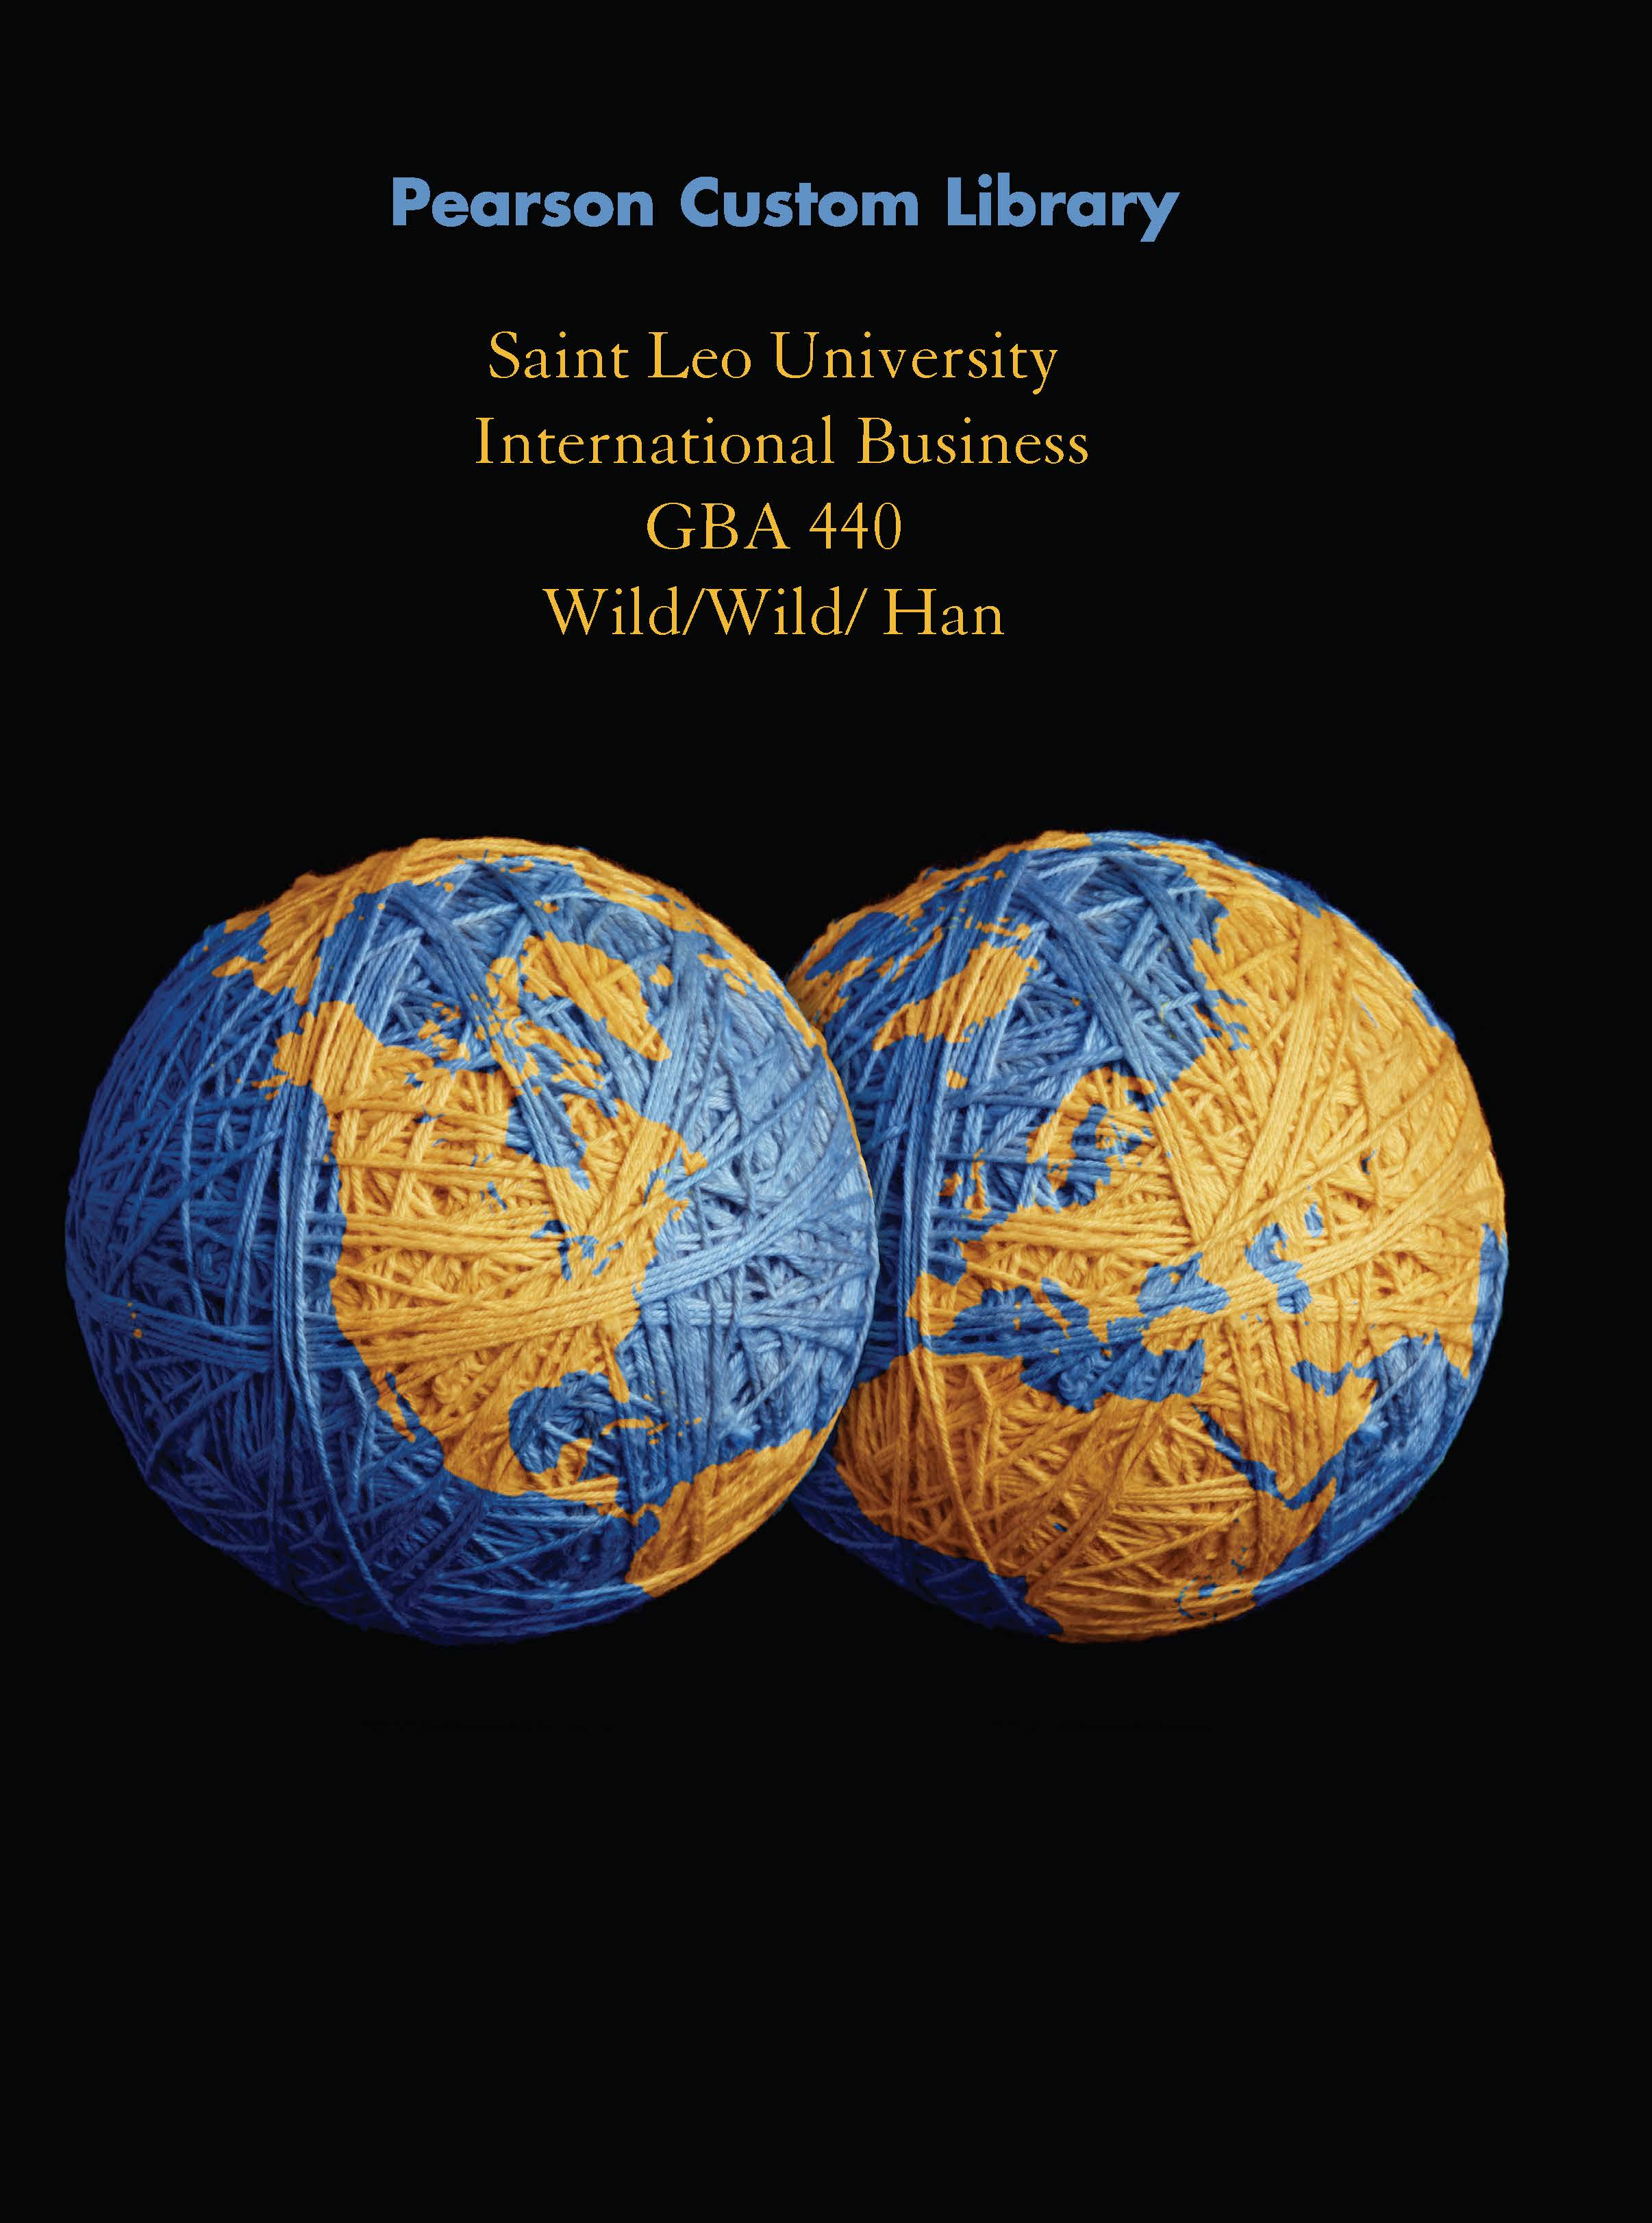 Saint leo university pearson learning solutions international business business 440 john j wild isbn 1397812692396150 fandeluxe Images